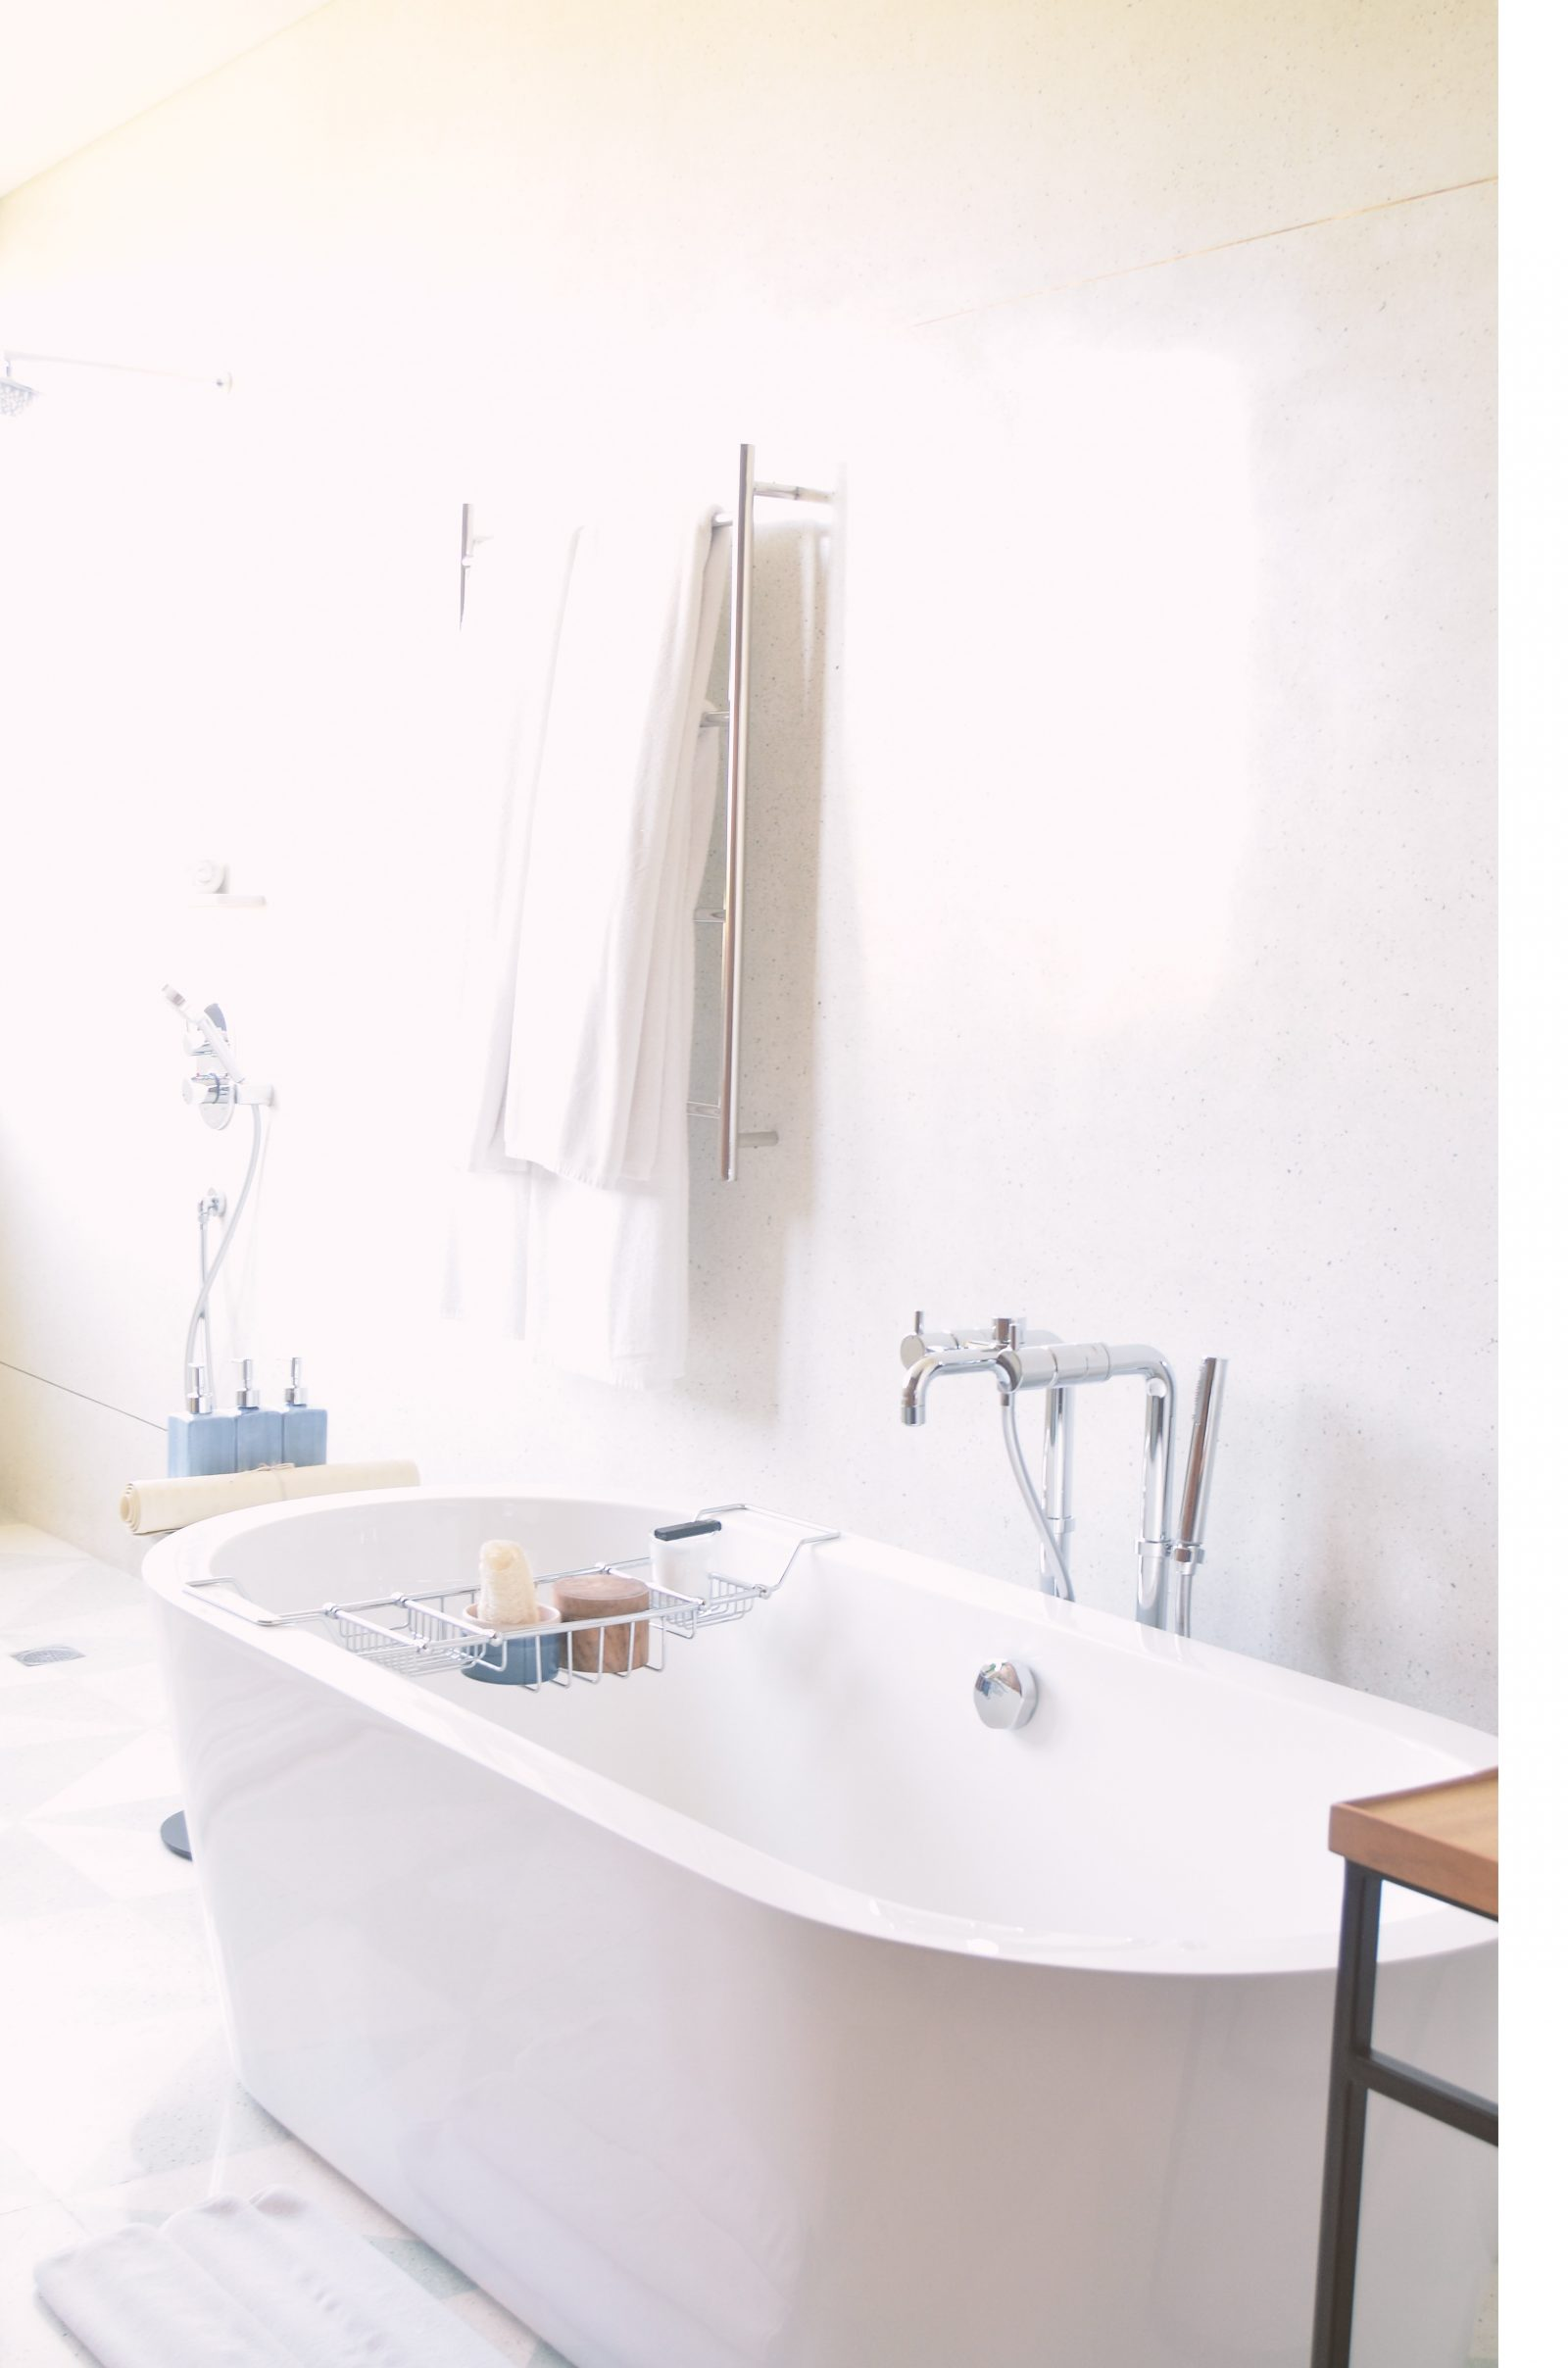 3 easy ways families can save money with an eco friendly bathroom.